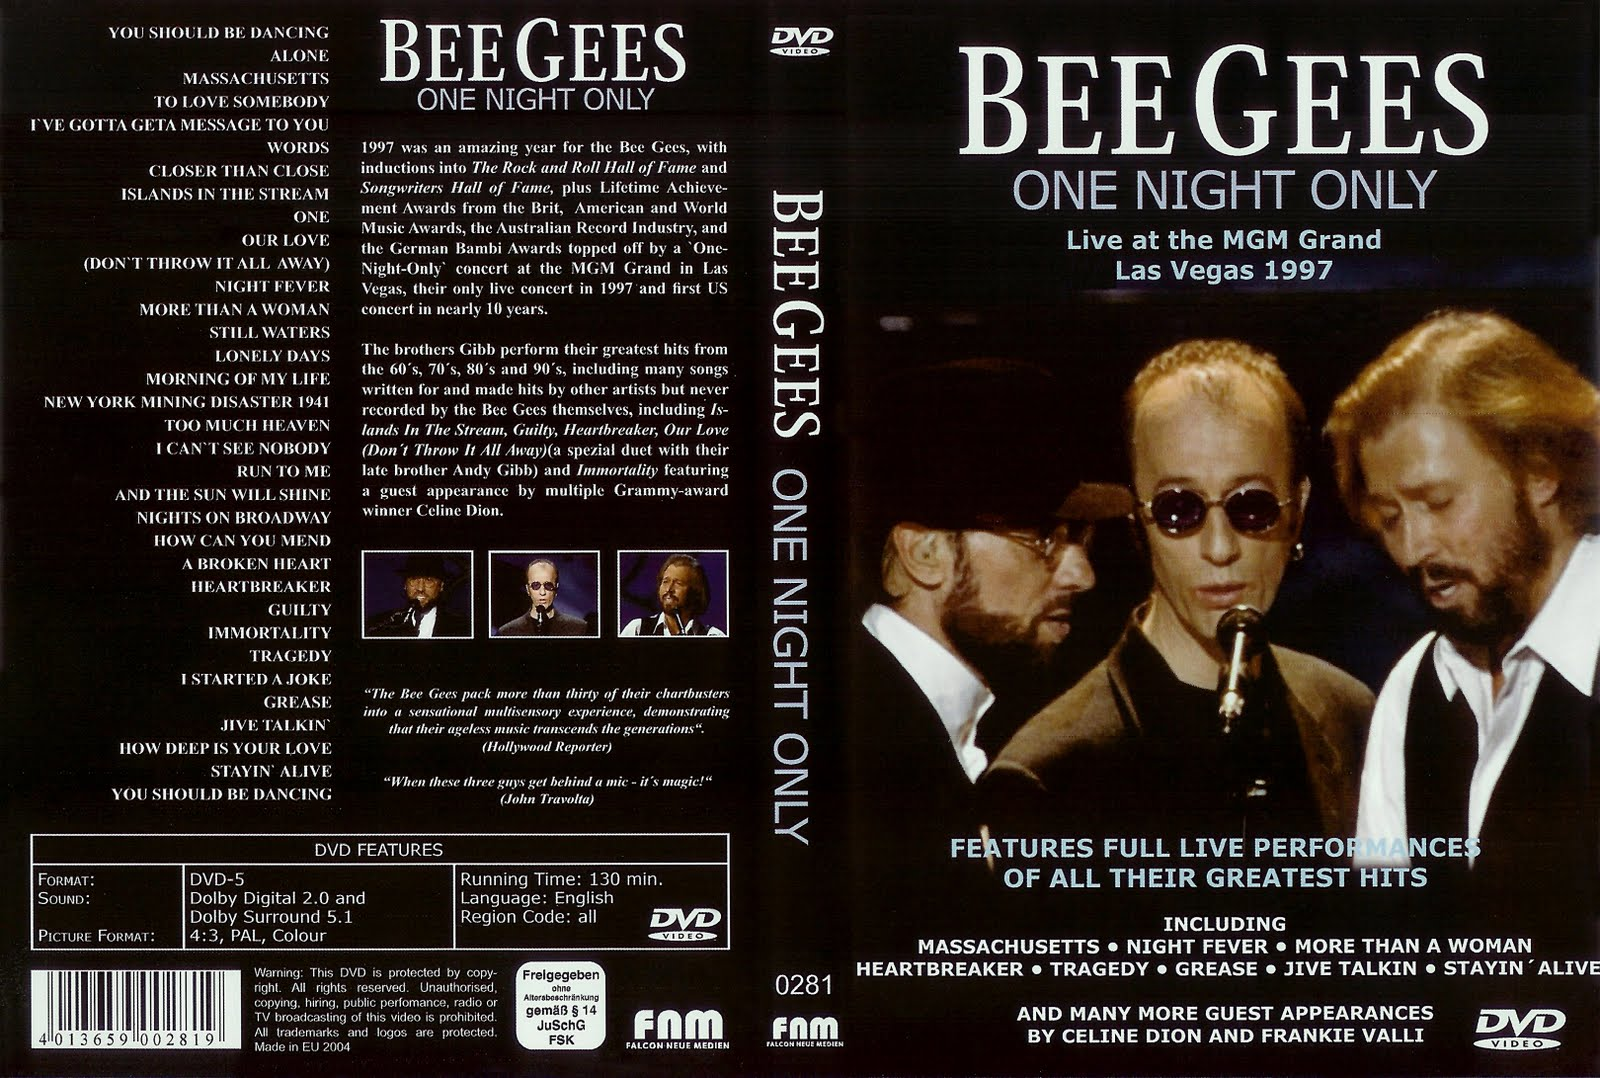 Bee Gees - One Night Only - The Limited Edition 6 Track From CD